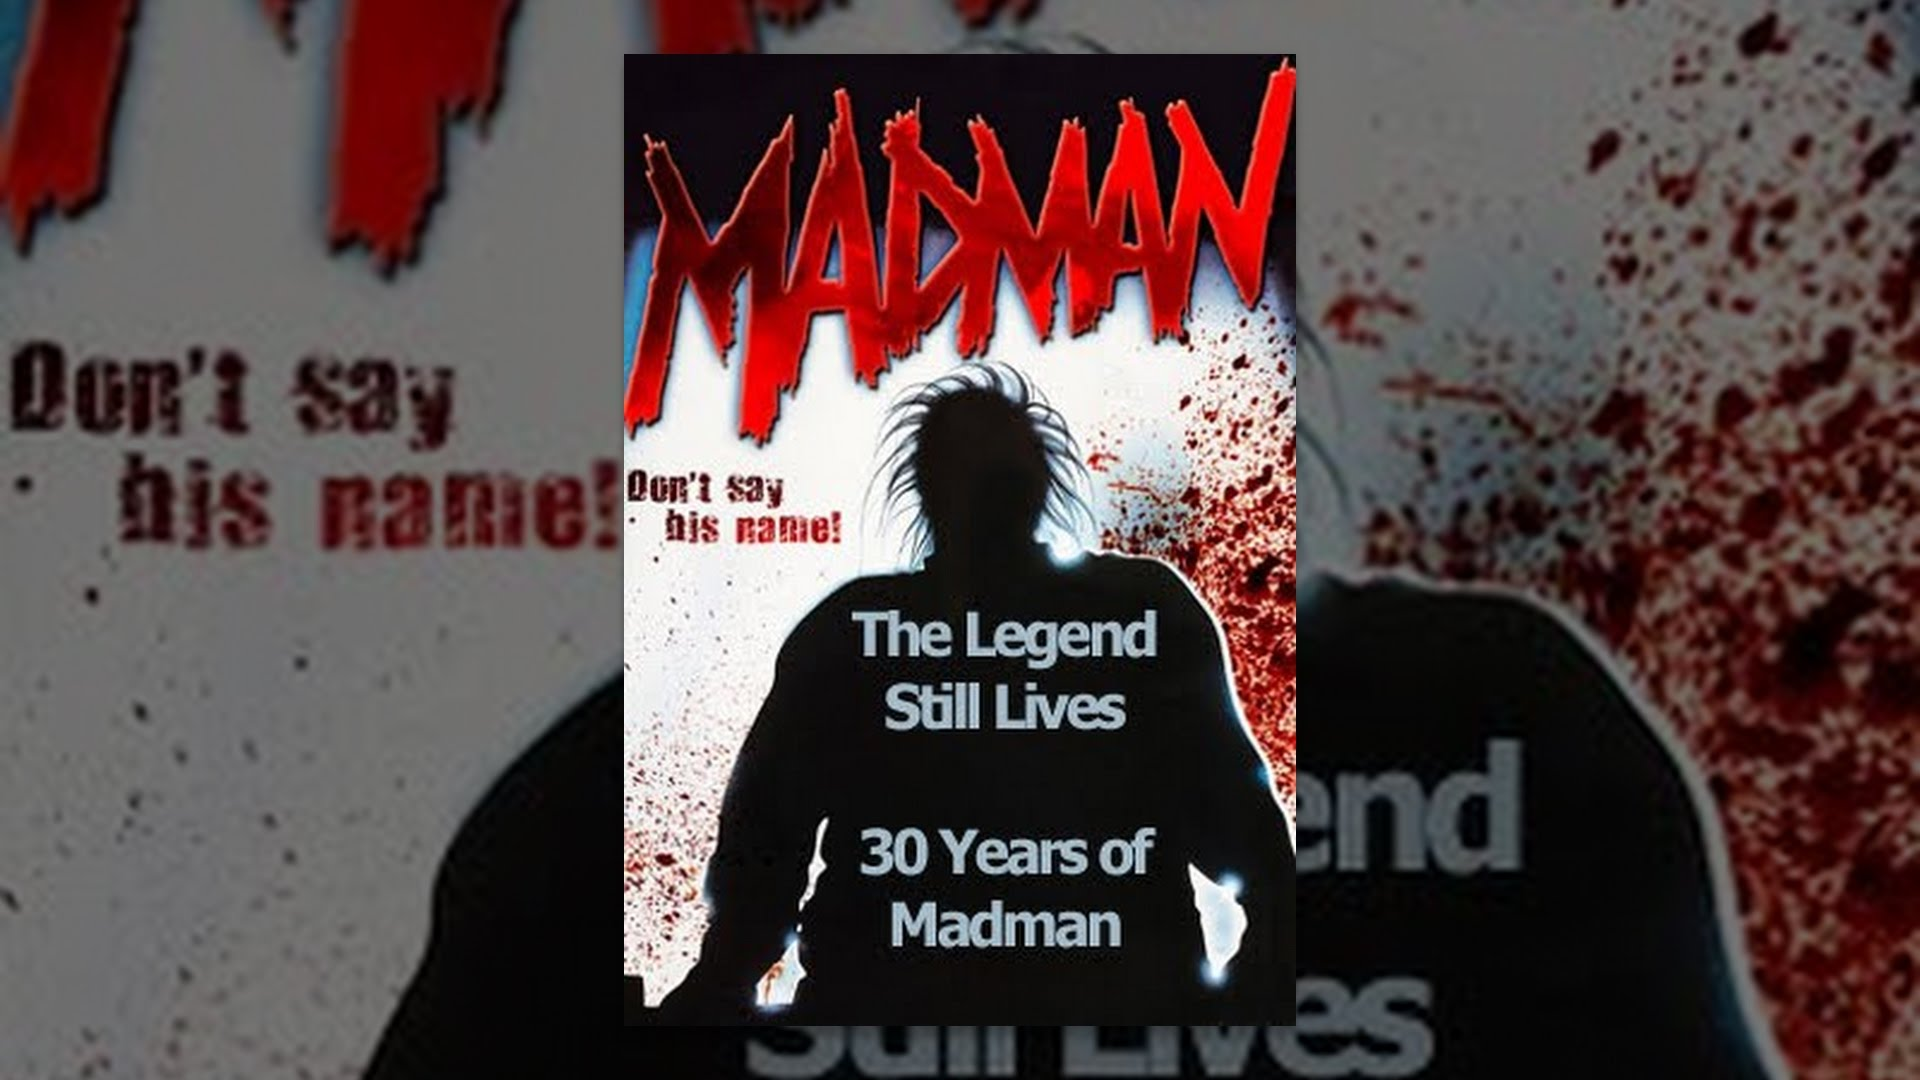 The Legend Still Lives: 30 Years of Madman